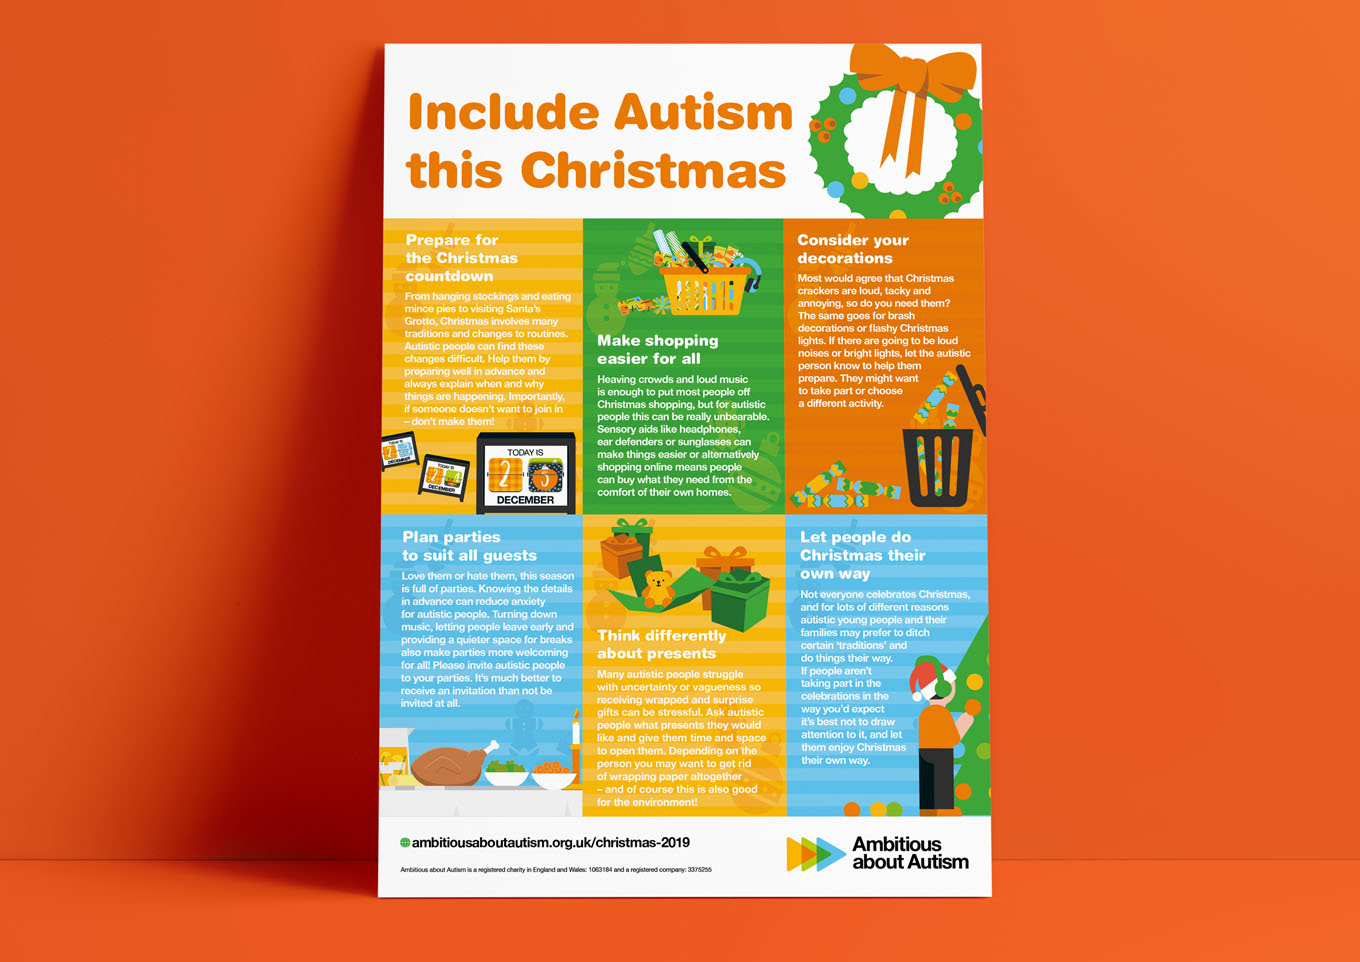 Ambitious about autism Christmas campaign 2019